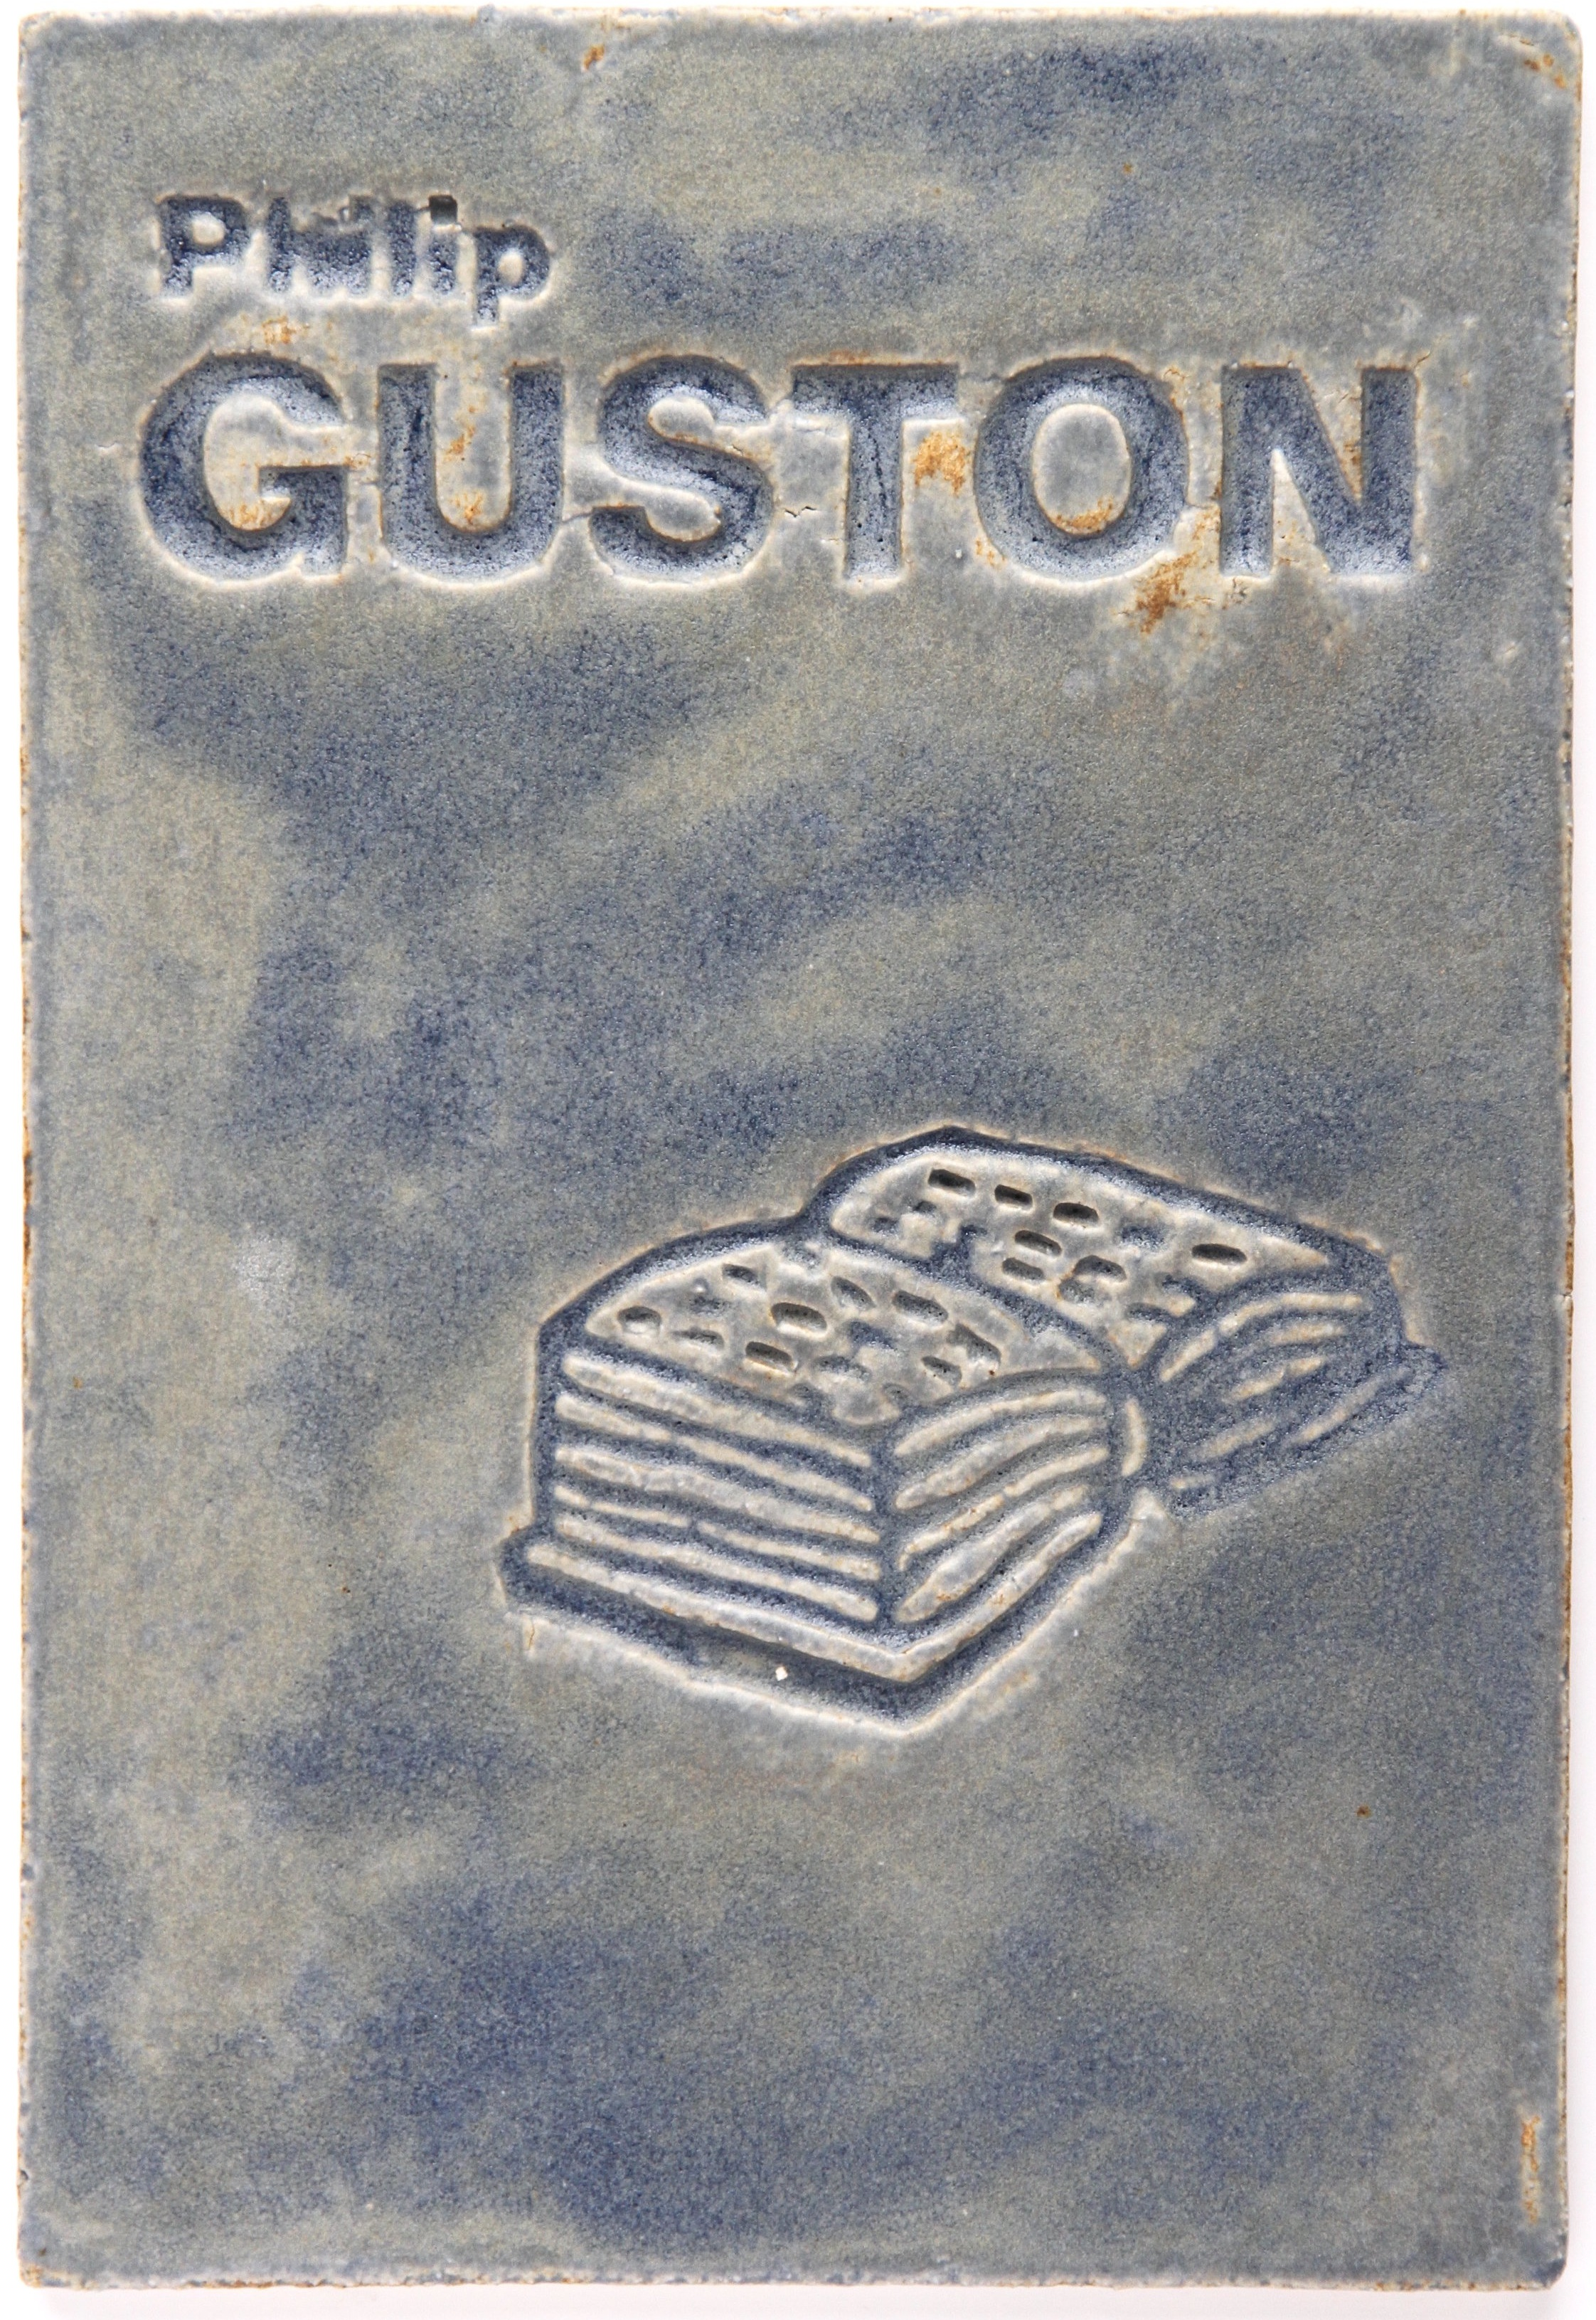 Philip+Guston+3.jpg